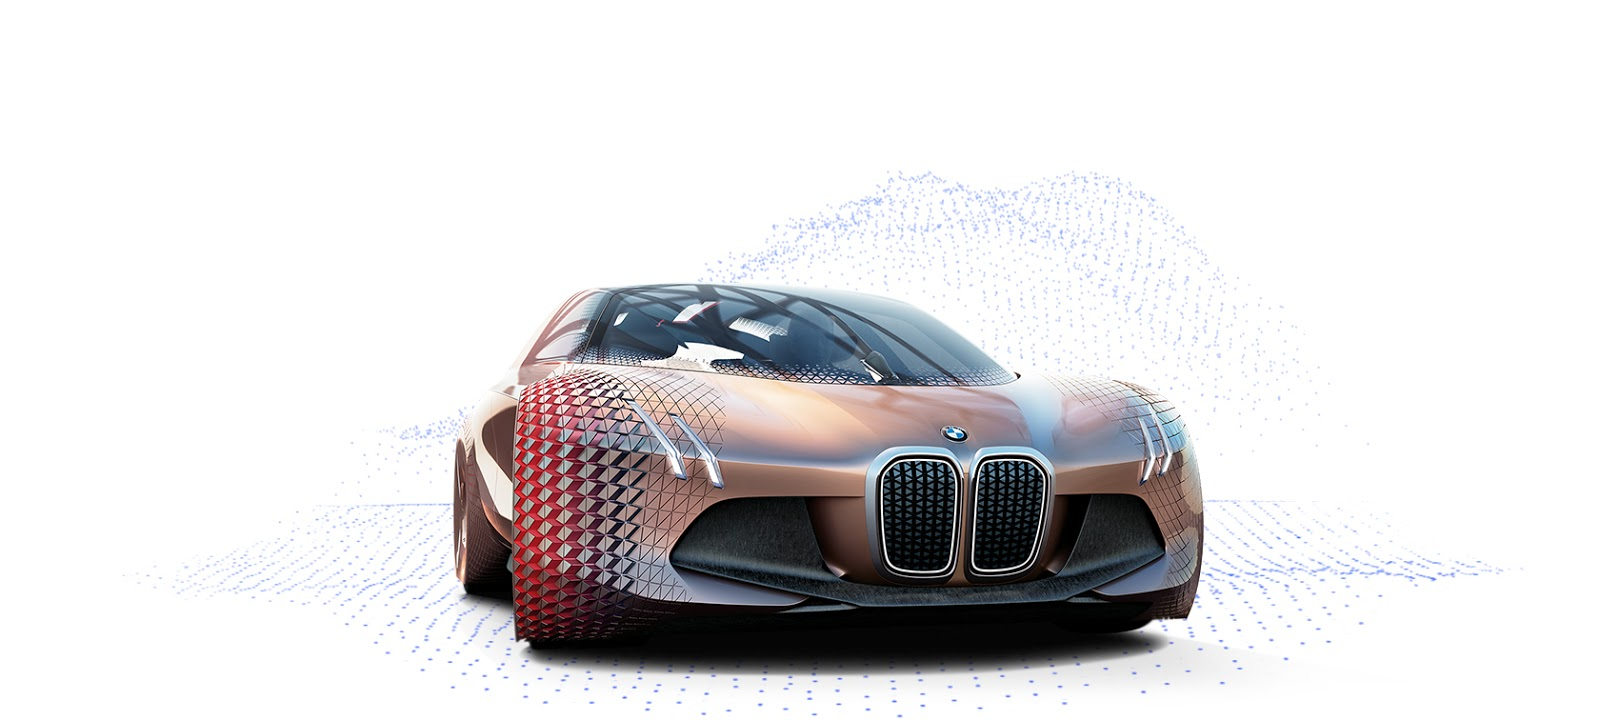 BMW Vision Next 100 car outer